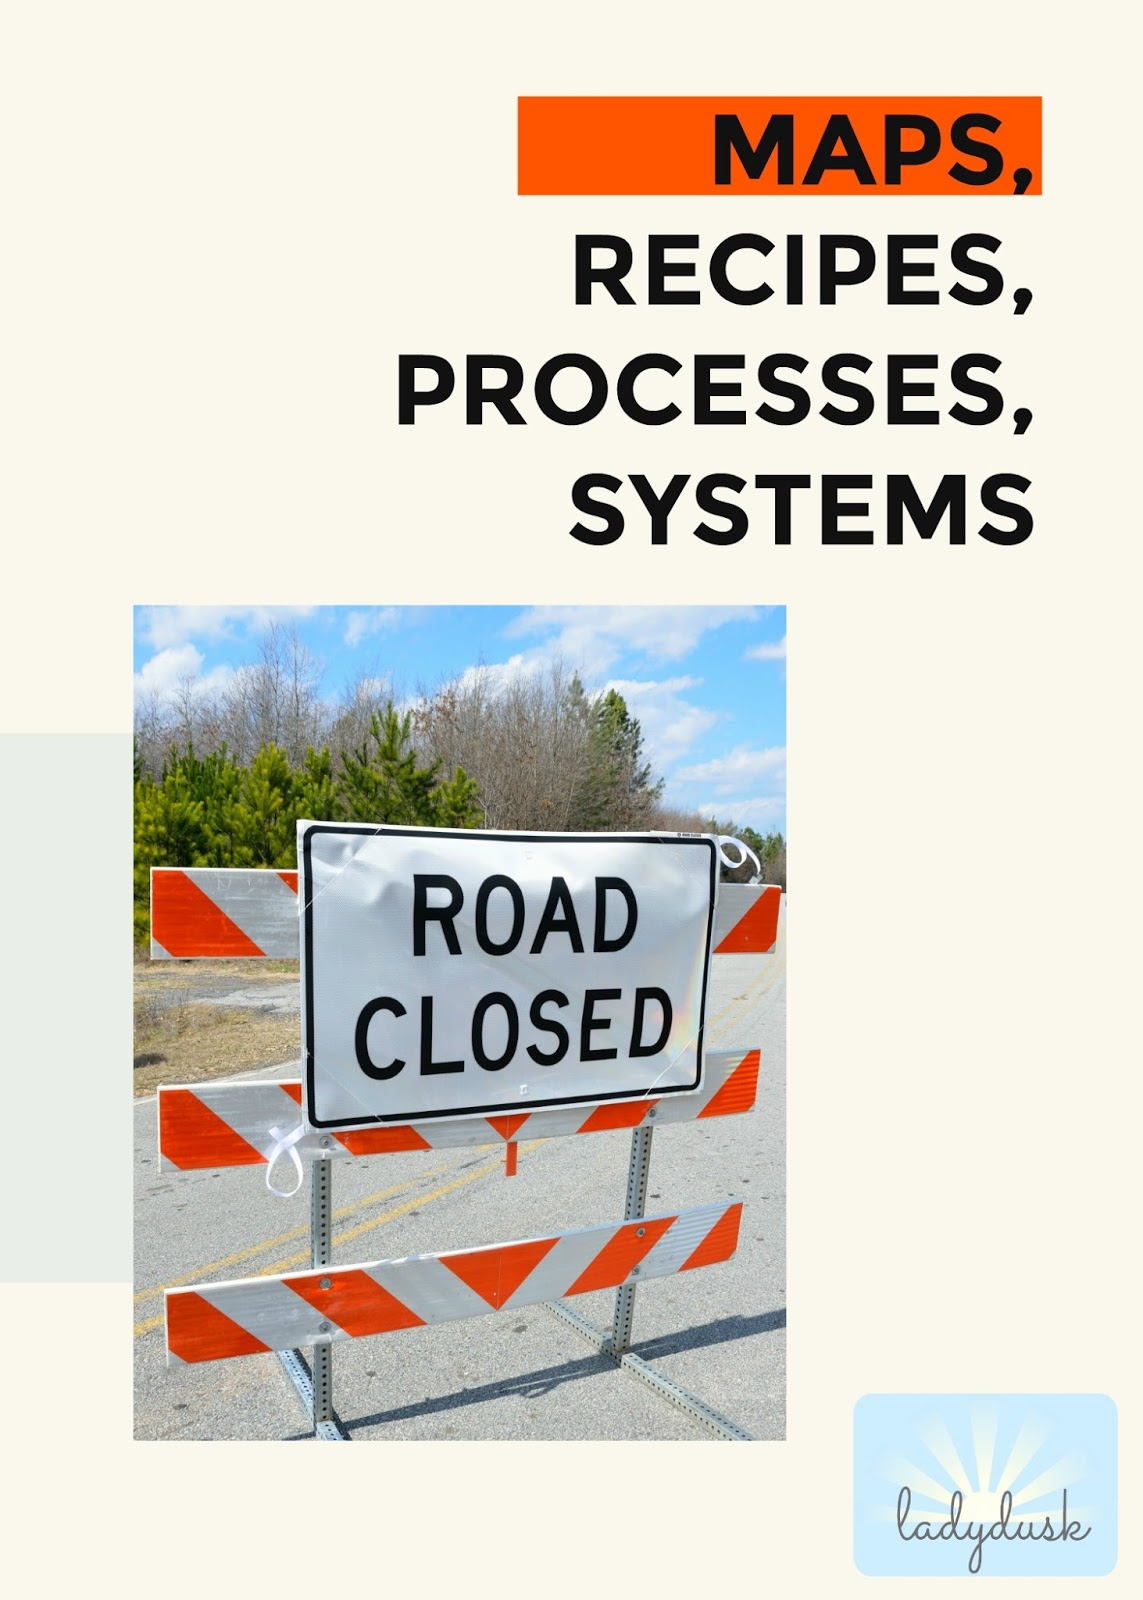 Maps, Recipes, Processes, Systems